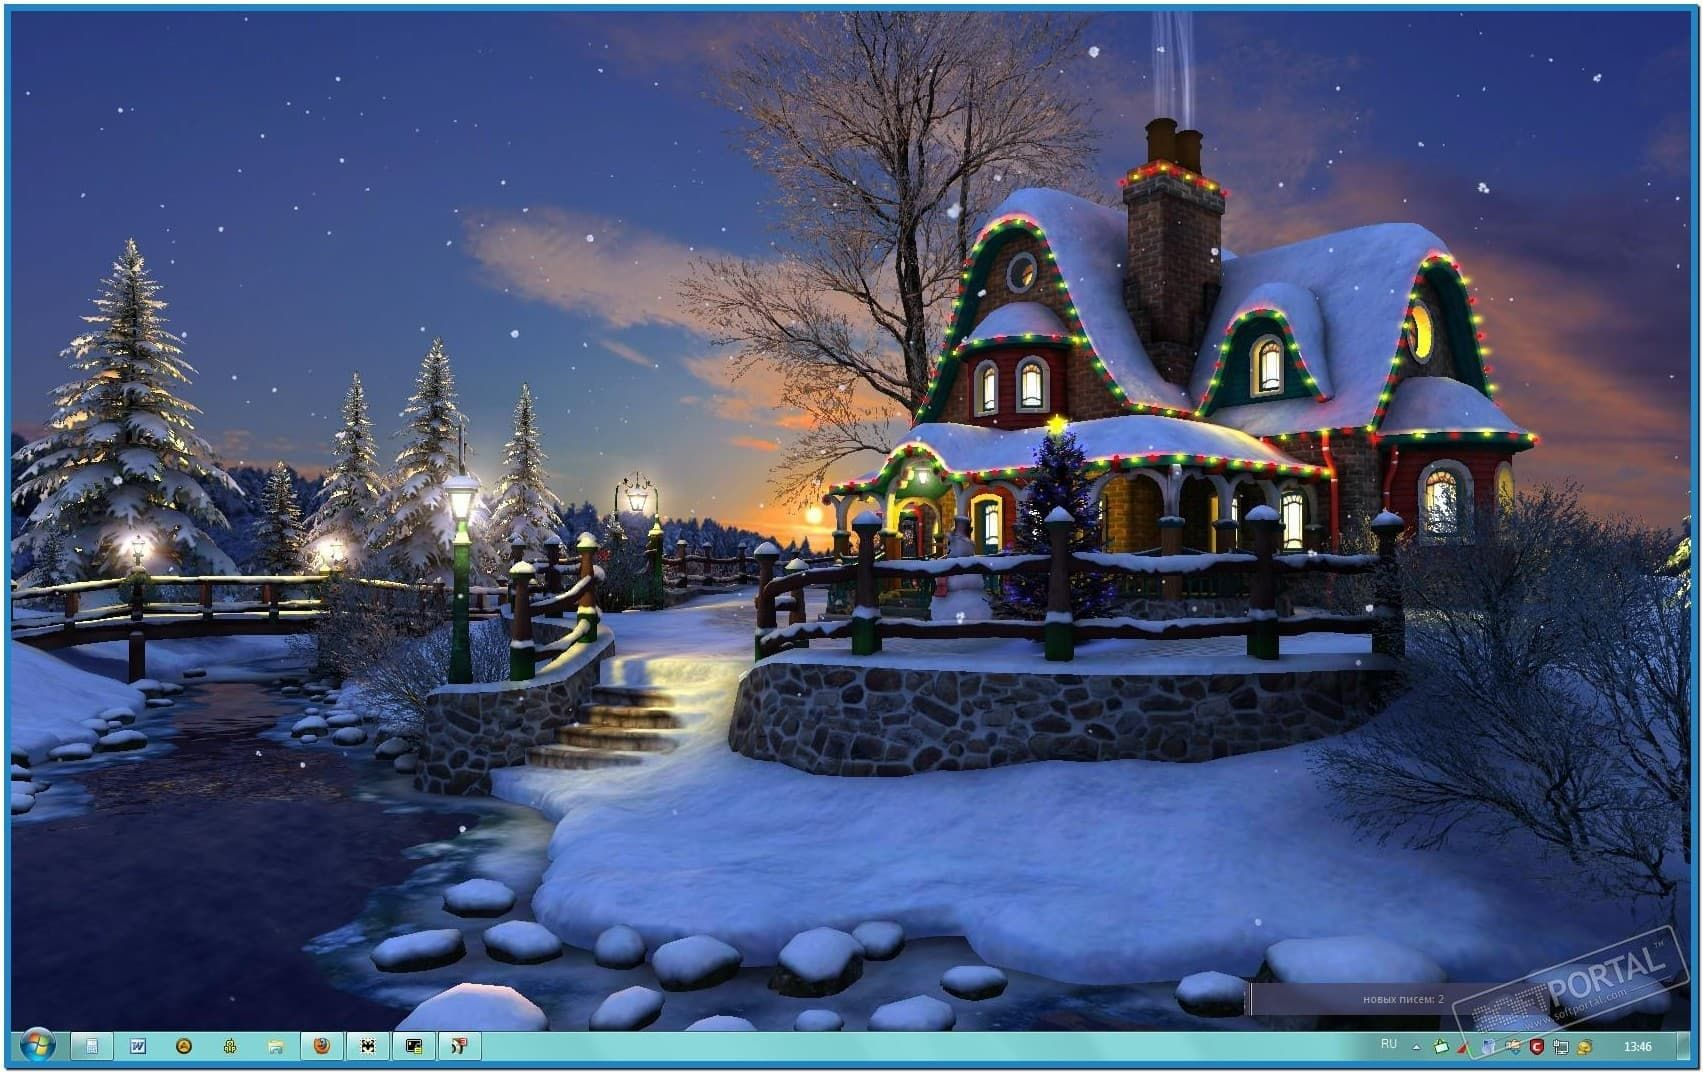 50 3d Animated Christmas Wallpapers On Wallpapersafari Christmas Screen Savers Animated Christmas Animated Christmas Wallpaper